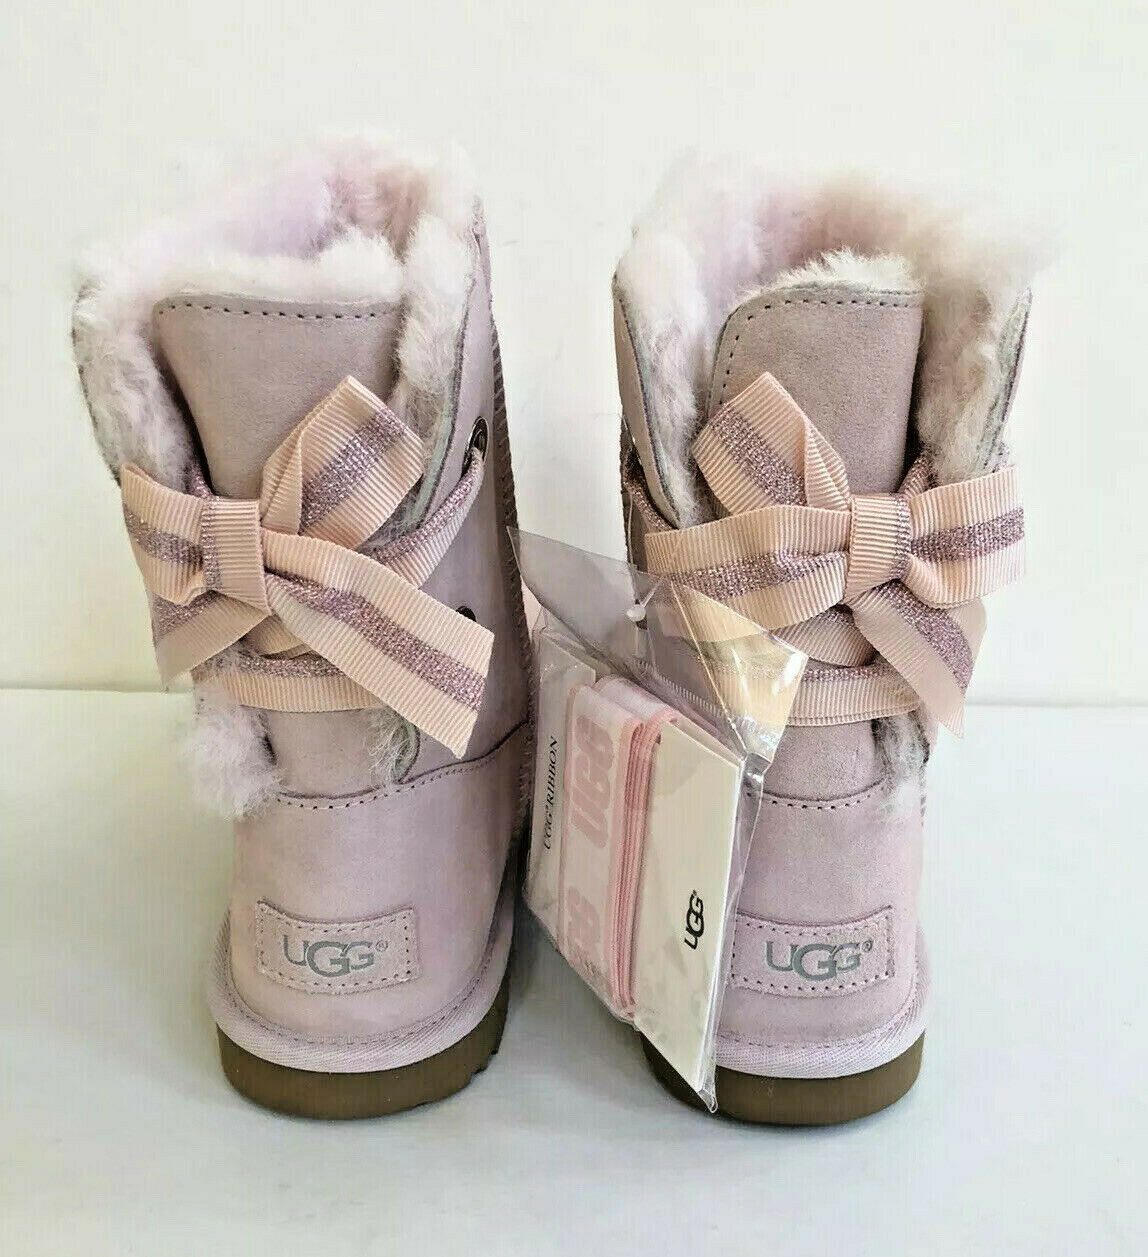 Primary image for UGG CUSTOMIZABLE BAILEY BOW II PINK KID/YOUTH US 6 - fit Women US 8 /EU 39 /UK 6